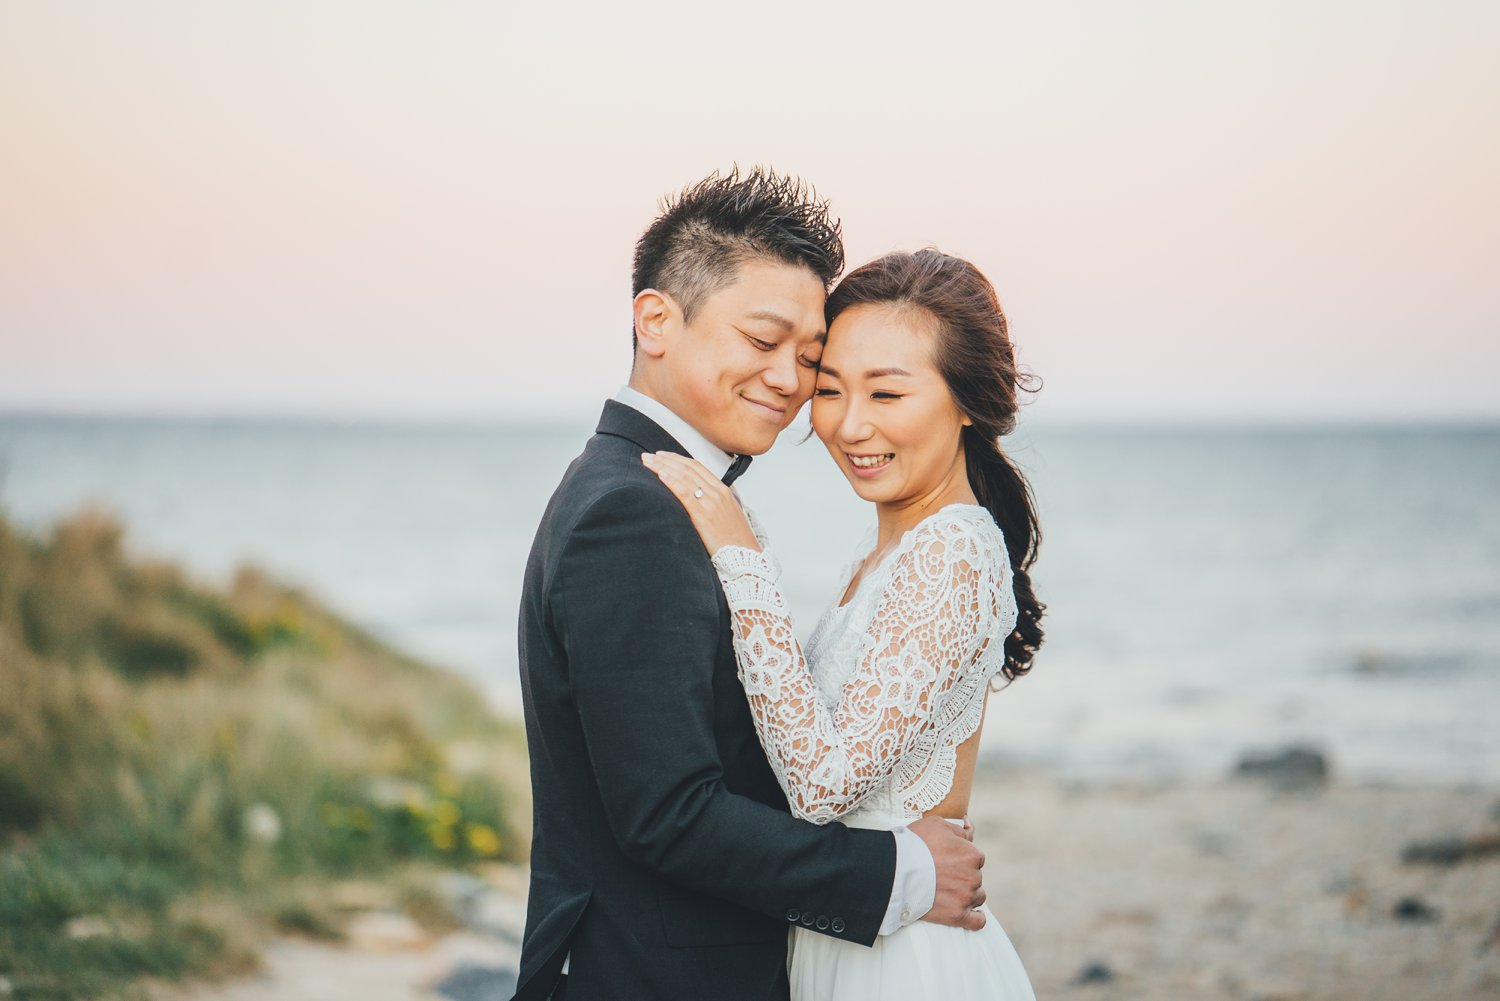 58NYC-NJ-ENGAGEMENT-PHOTOGRAPHY-BY-INTOTHESTORY-MOO-JAE.JPG